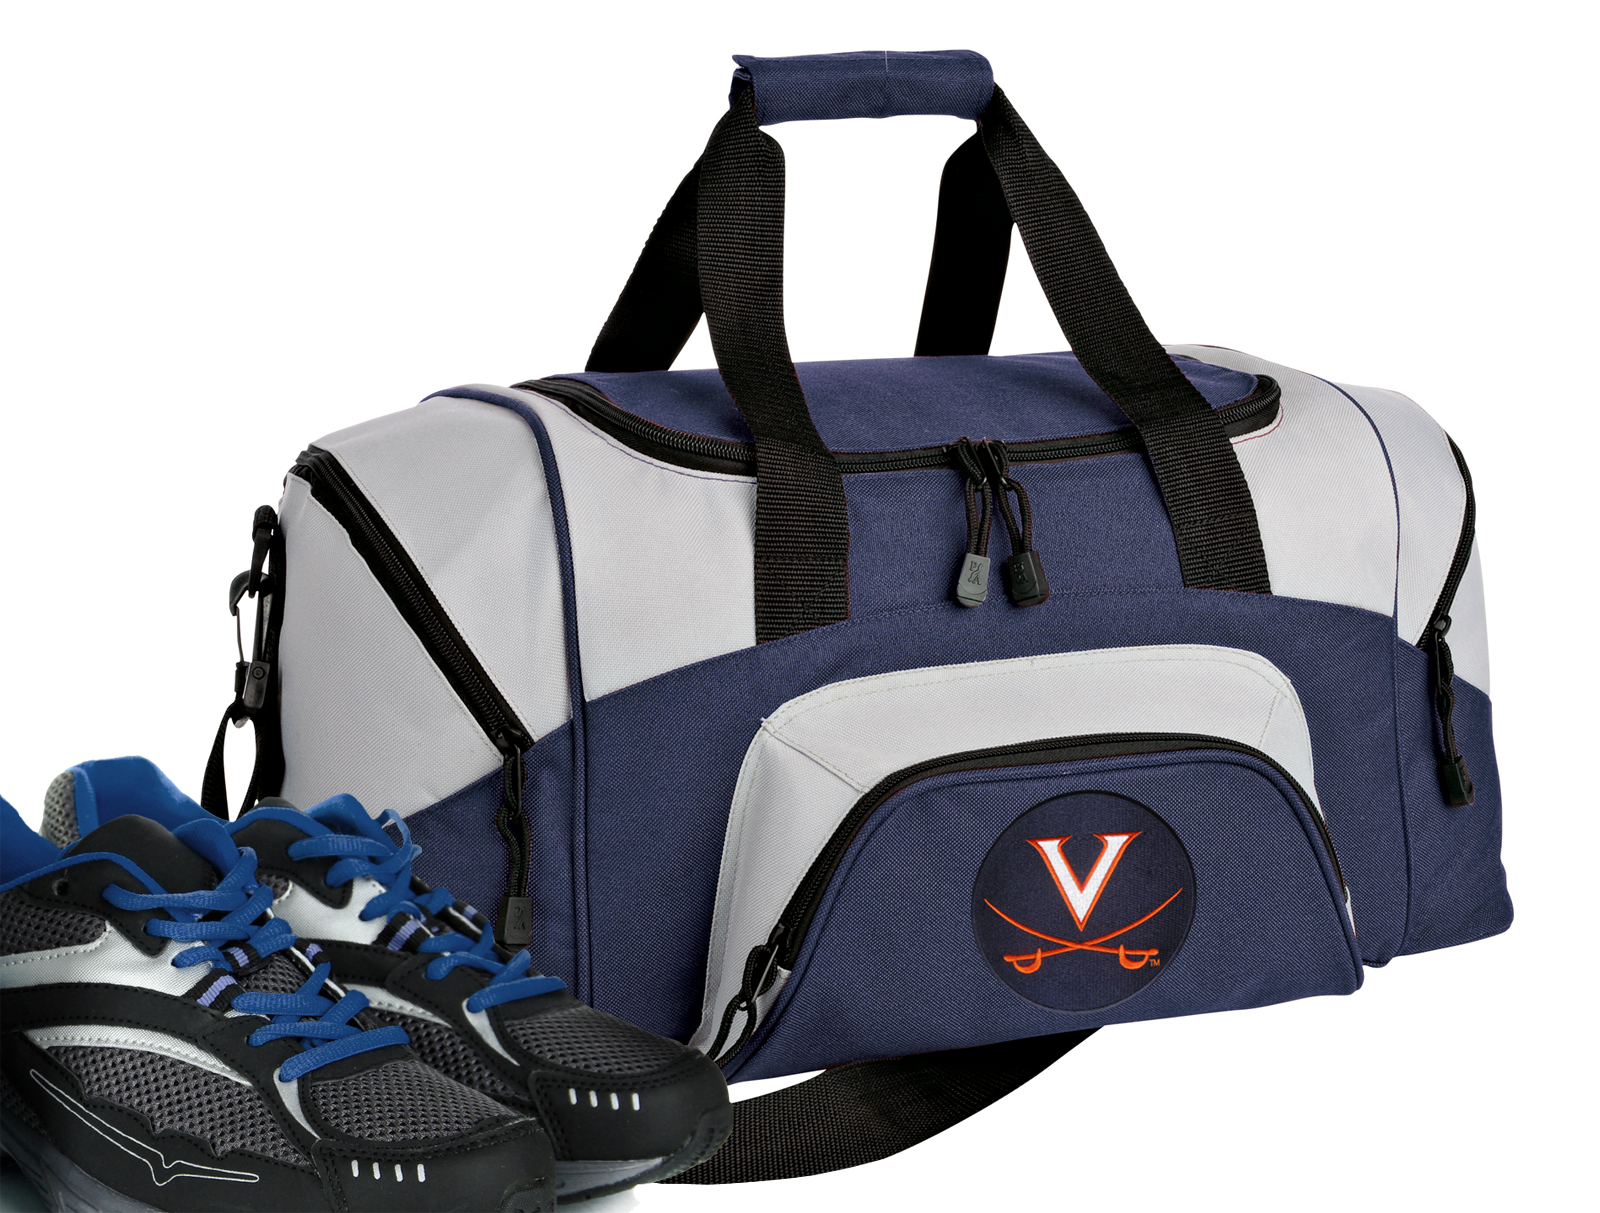 Small University of Virginia Duffle Bag or Small UVA Gym Bags by